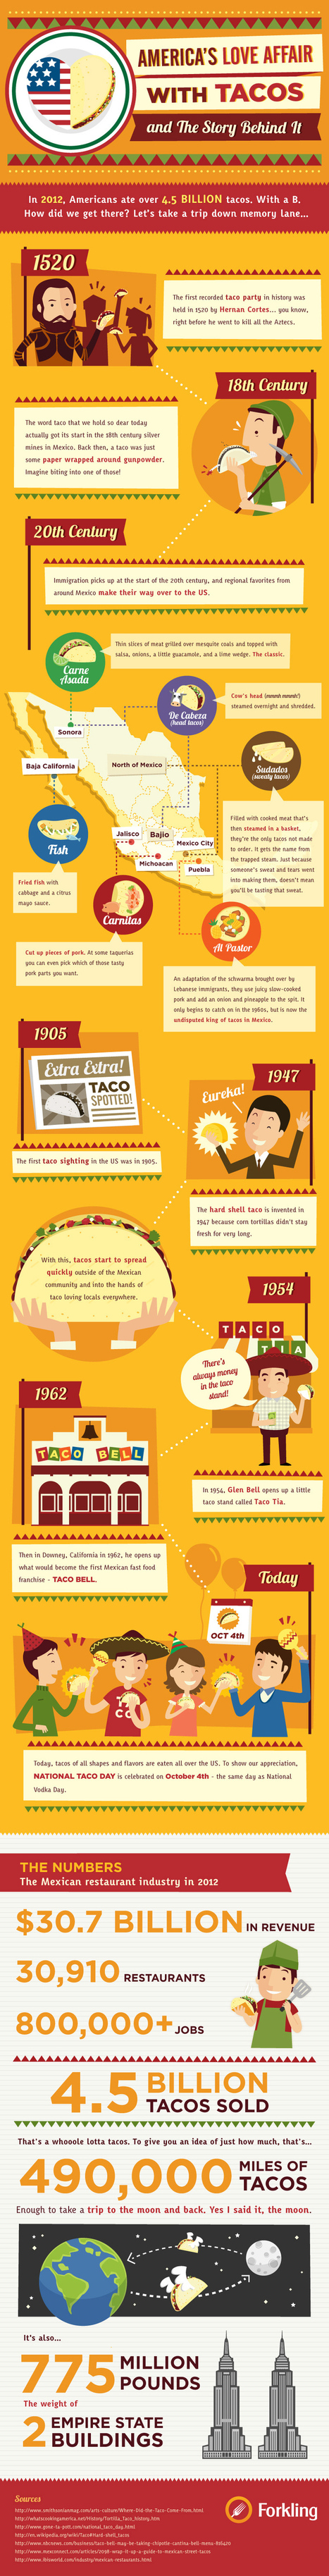 America's Love Affair With Tacos And The Story Behind It [Infographic]   Forkling   Food   Scoop.it